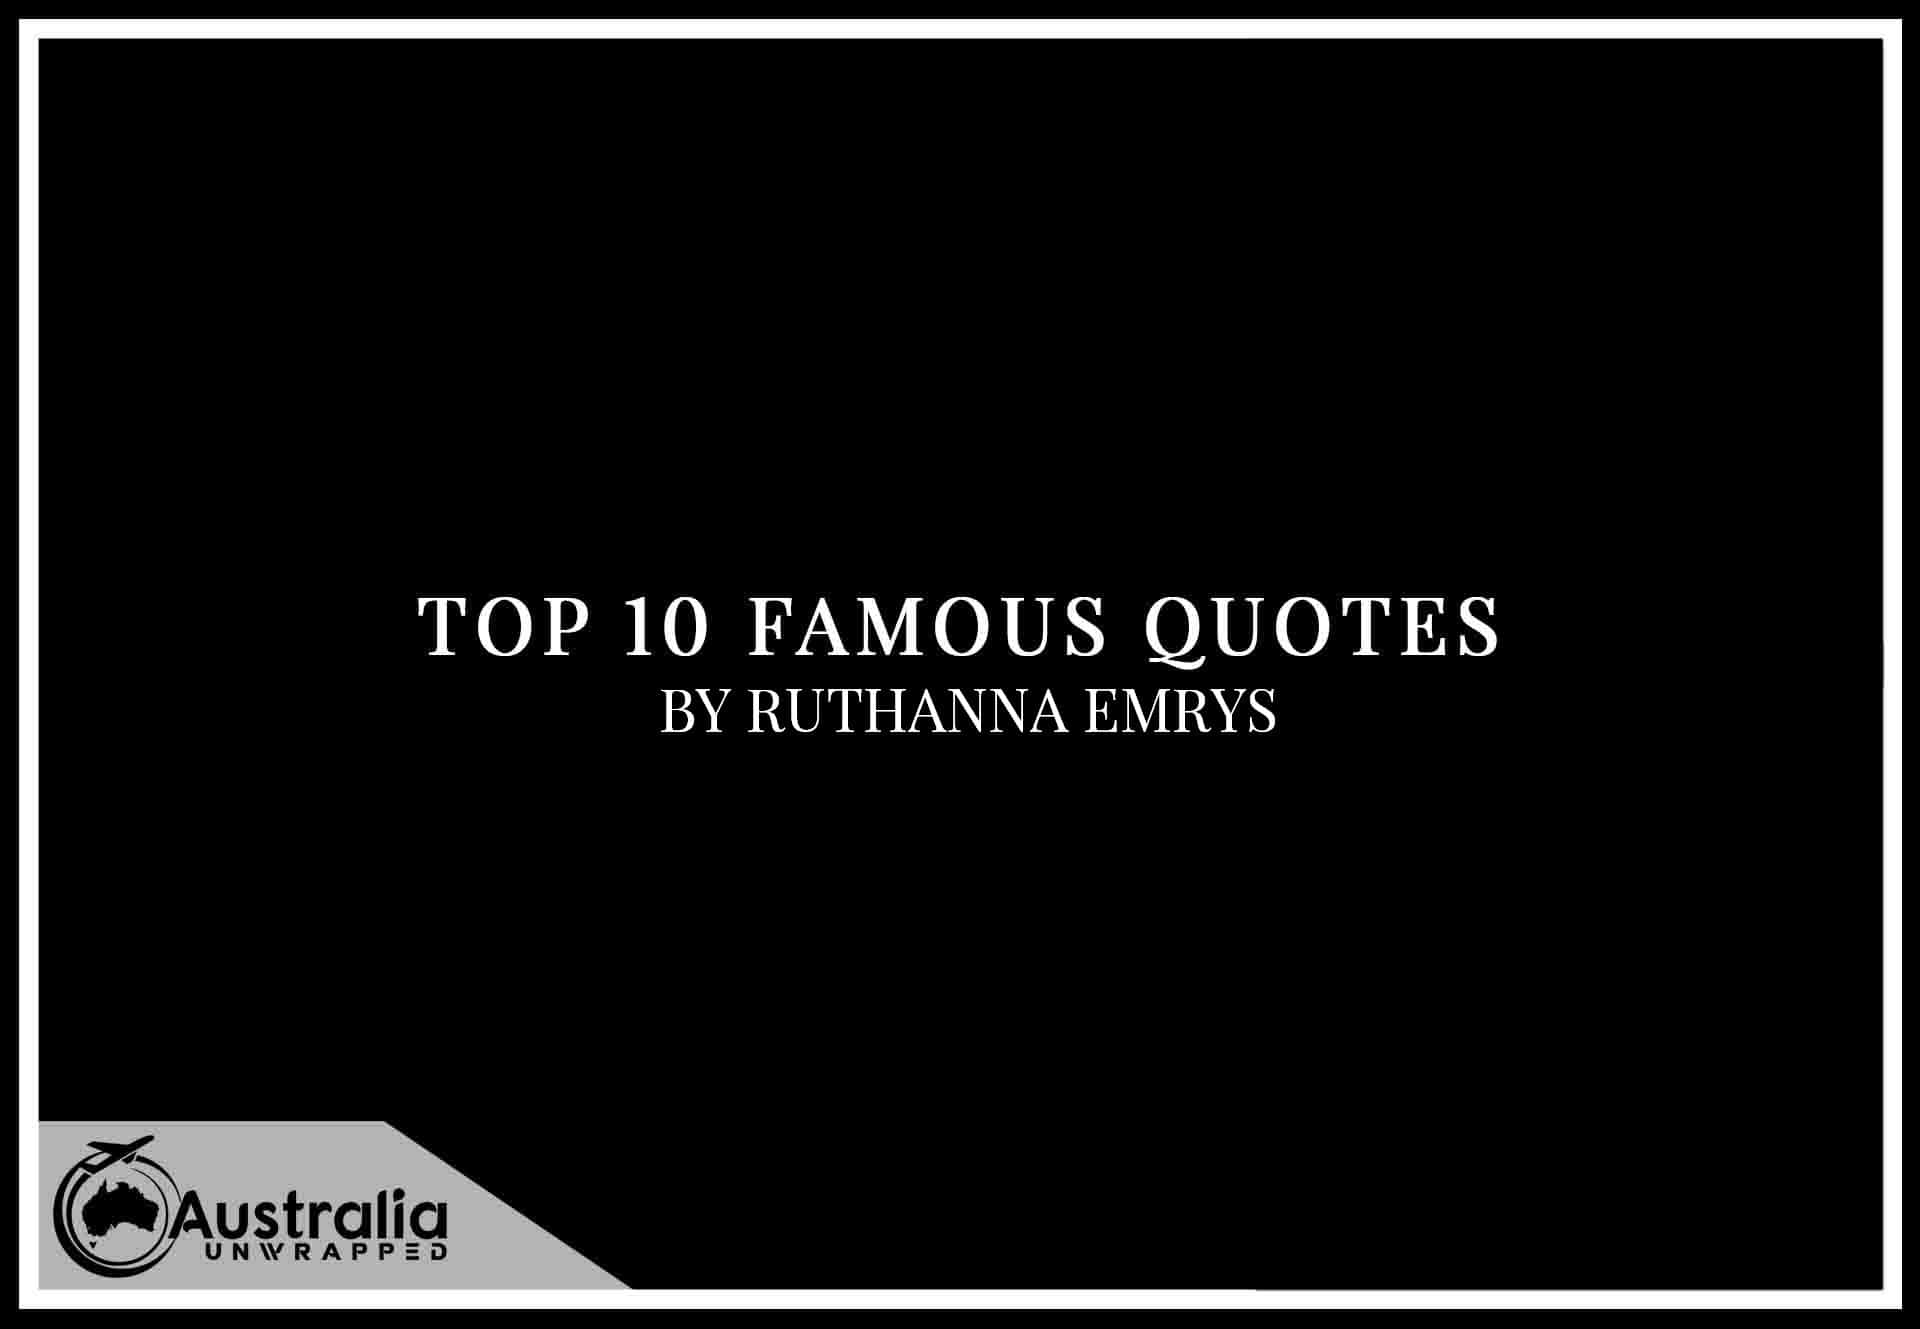 Top 10 Famous Quotes by Author Ruthanna Emrys